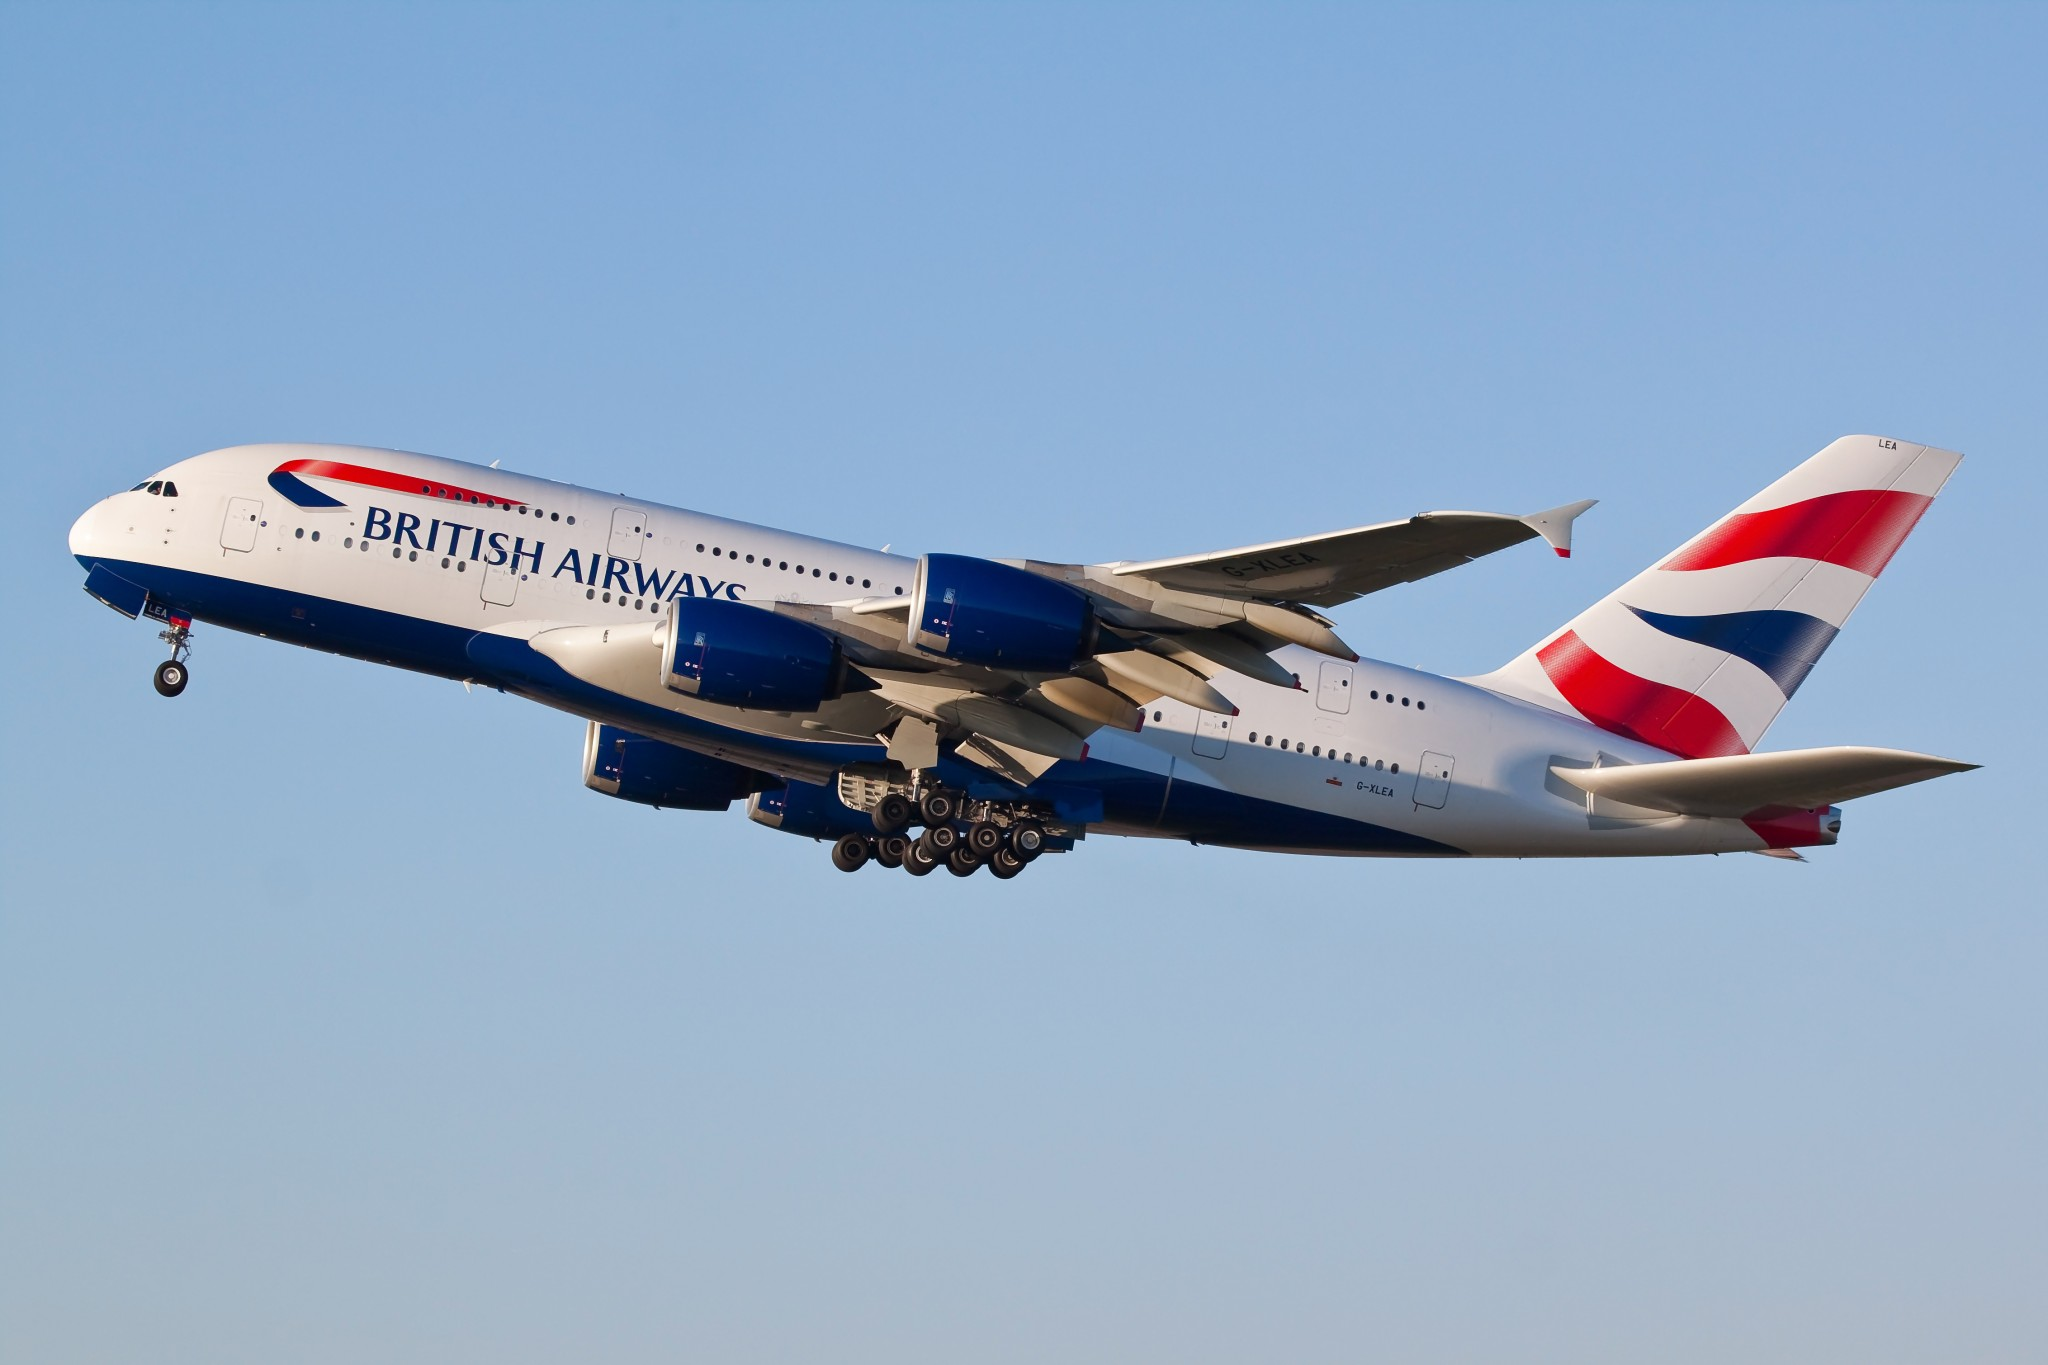 BRITISH AIRWAYS BA A380